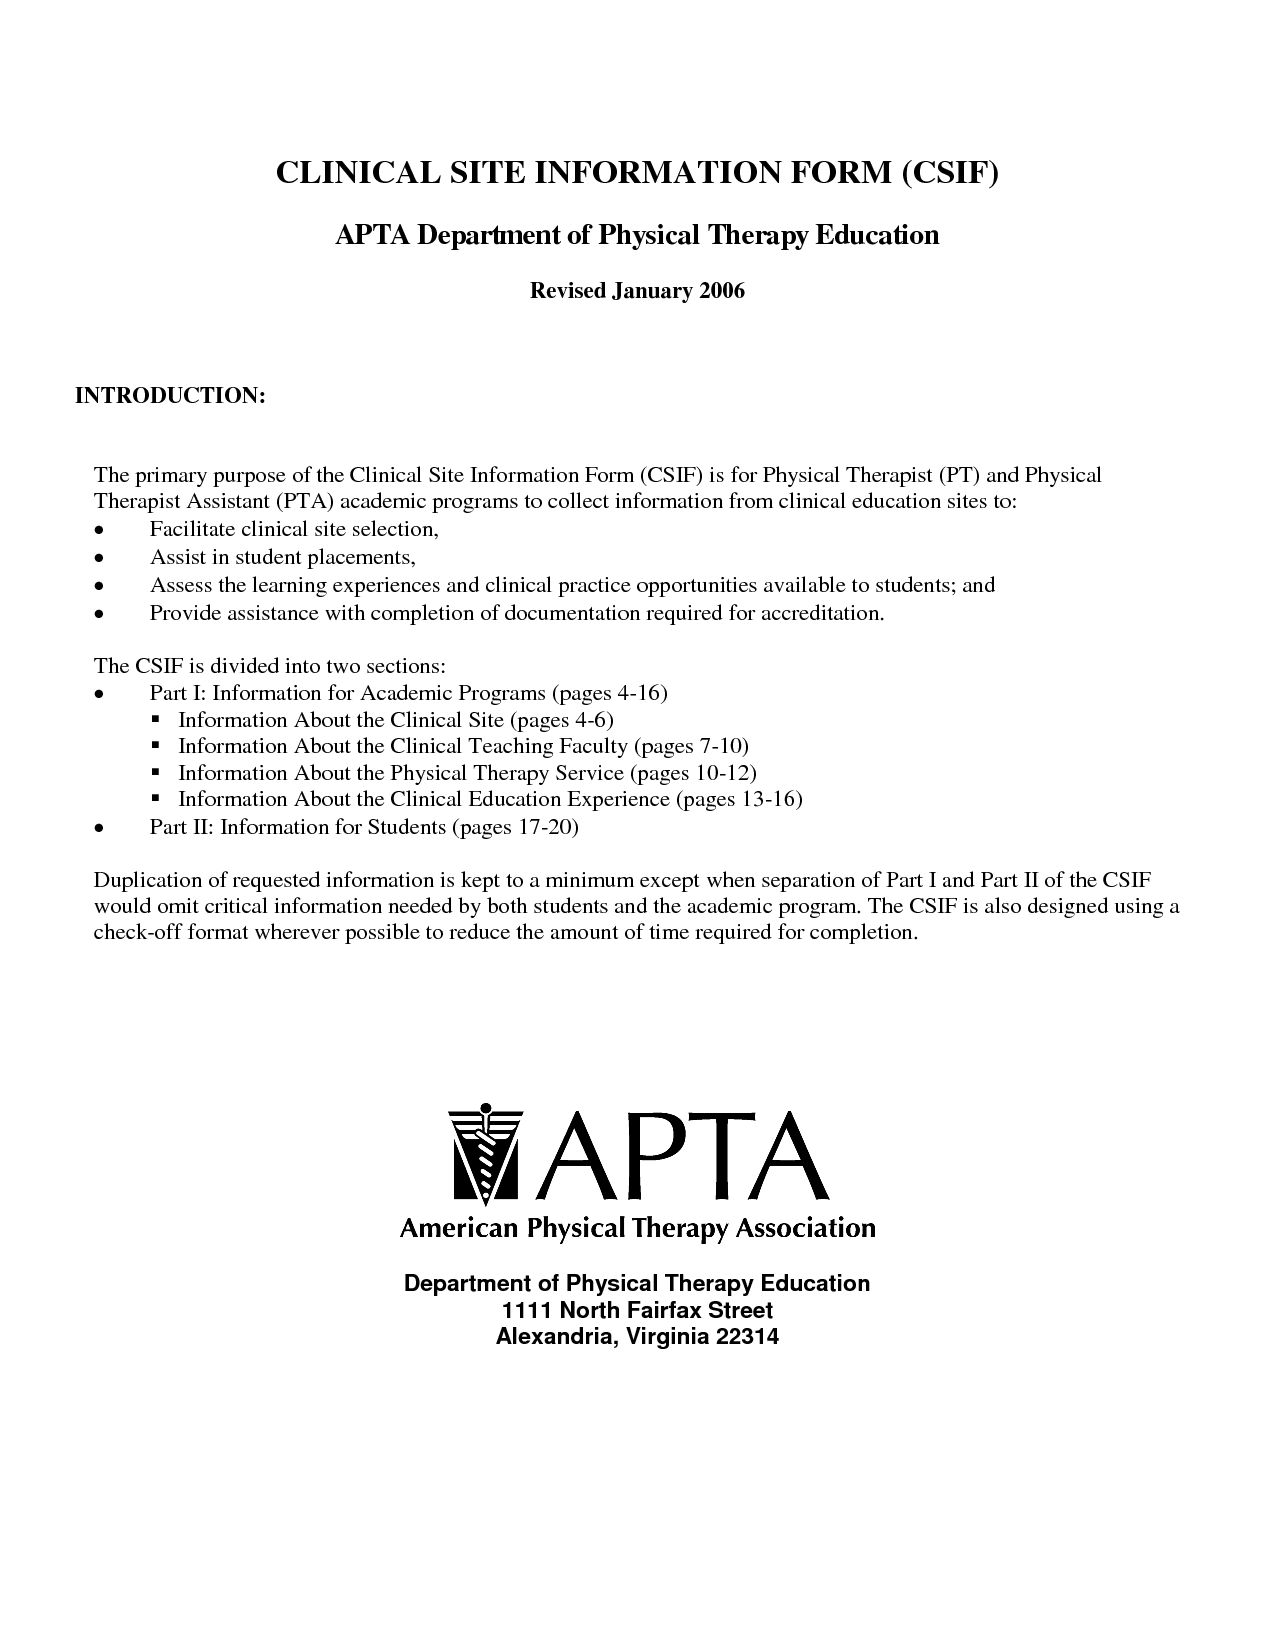 Marvelous Clinical Site Information Form For Apta Department Of Physical Therapy With  Introduction   Physical Therapist Assistant  Physical Therapist Assistant Resume